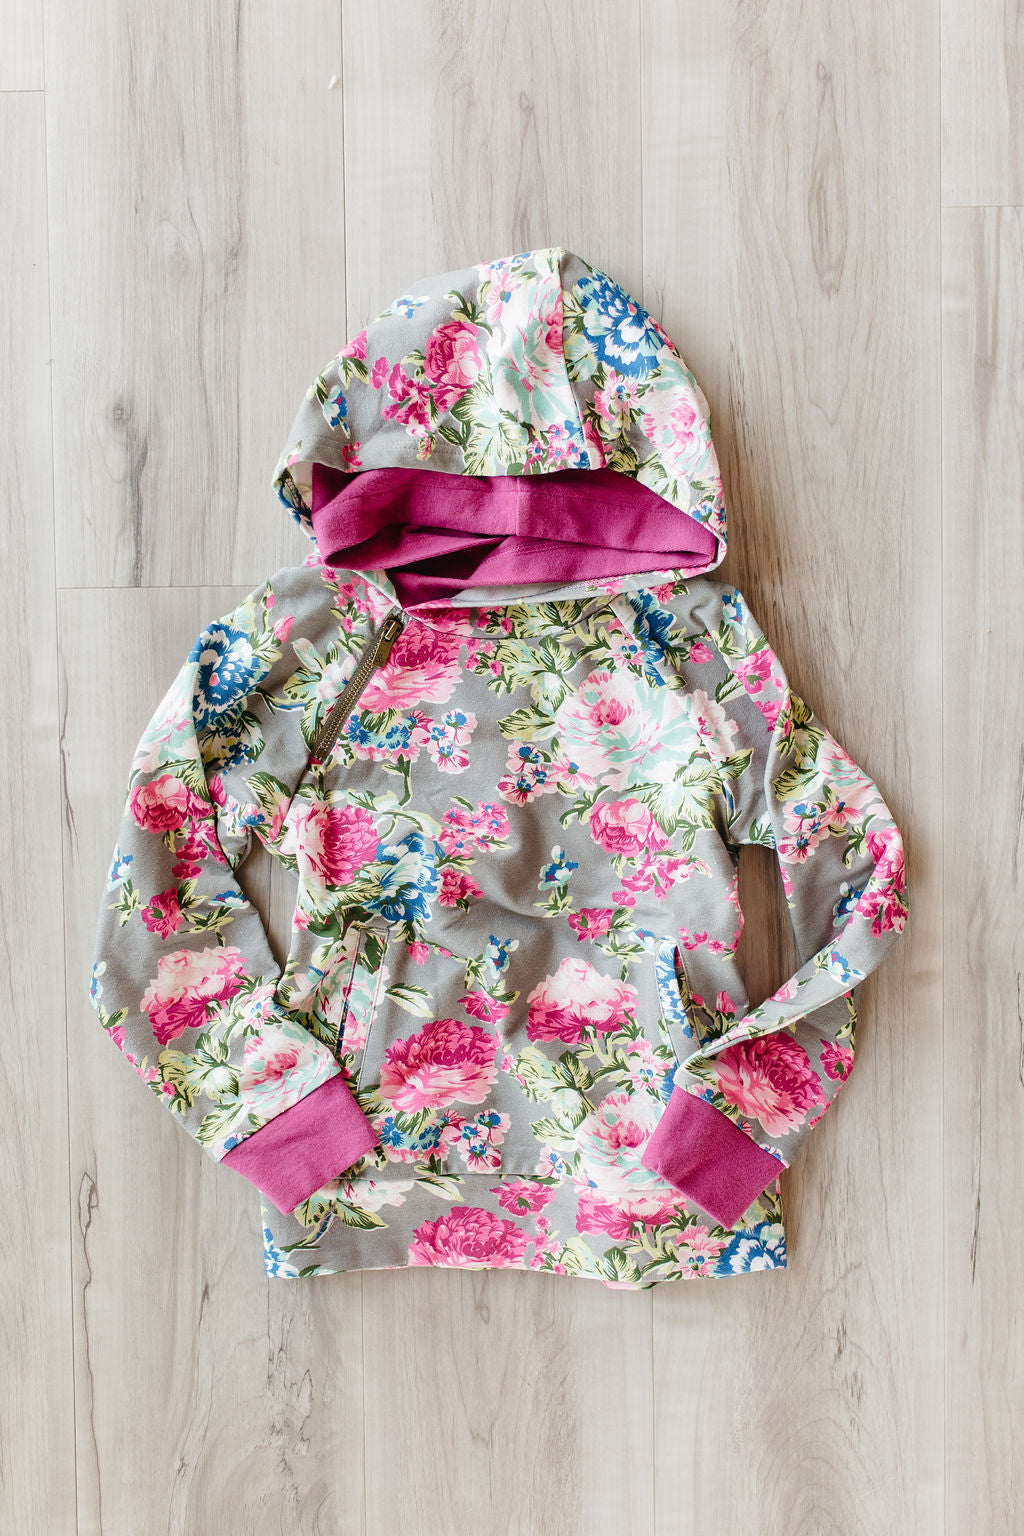 YOUTH Doublehood Sweatshirt - Floral Frenzy